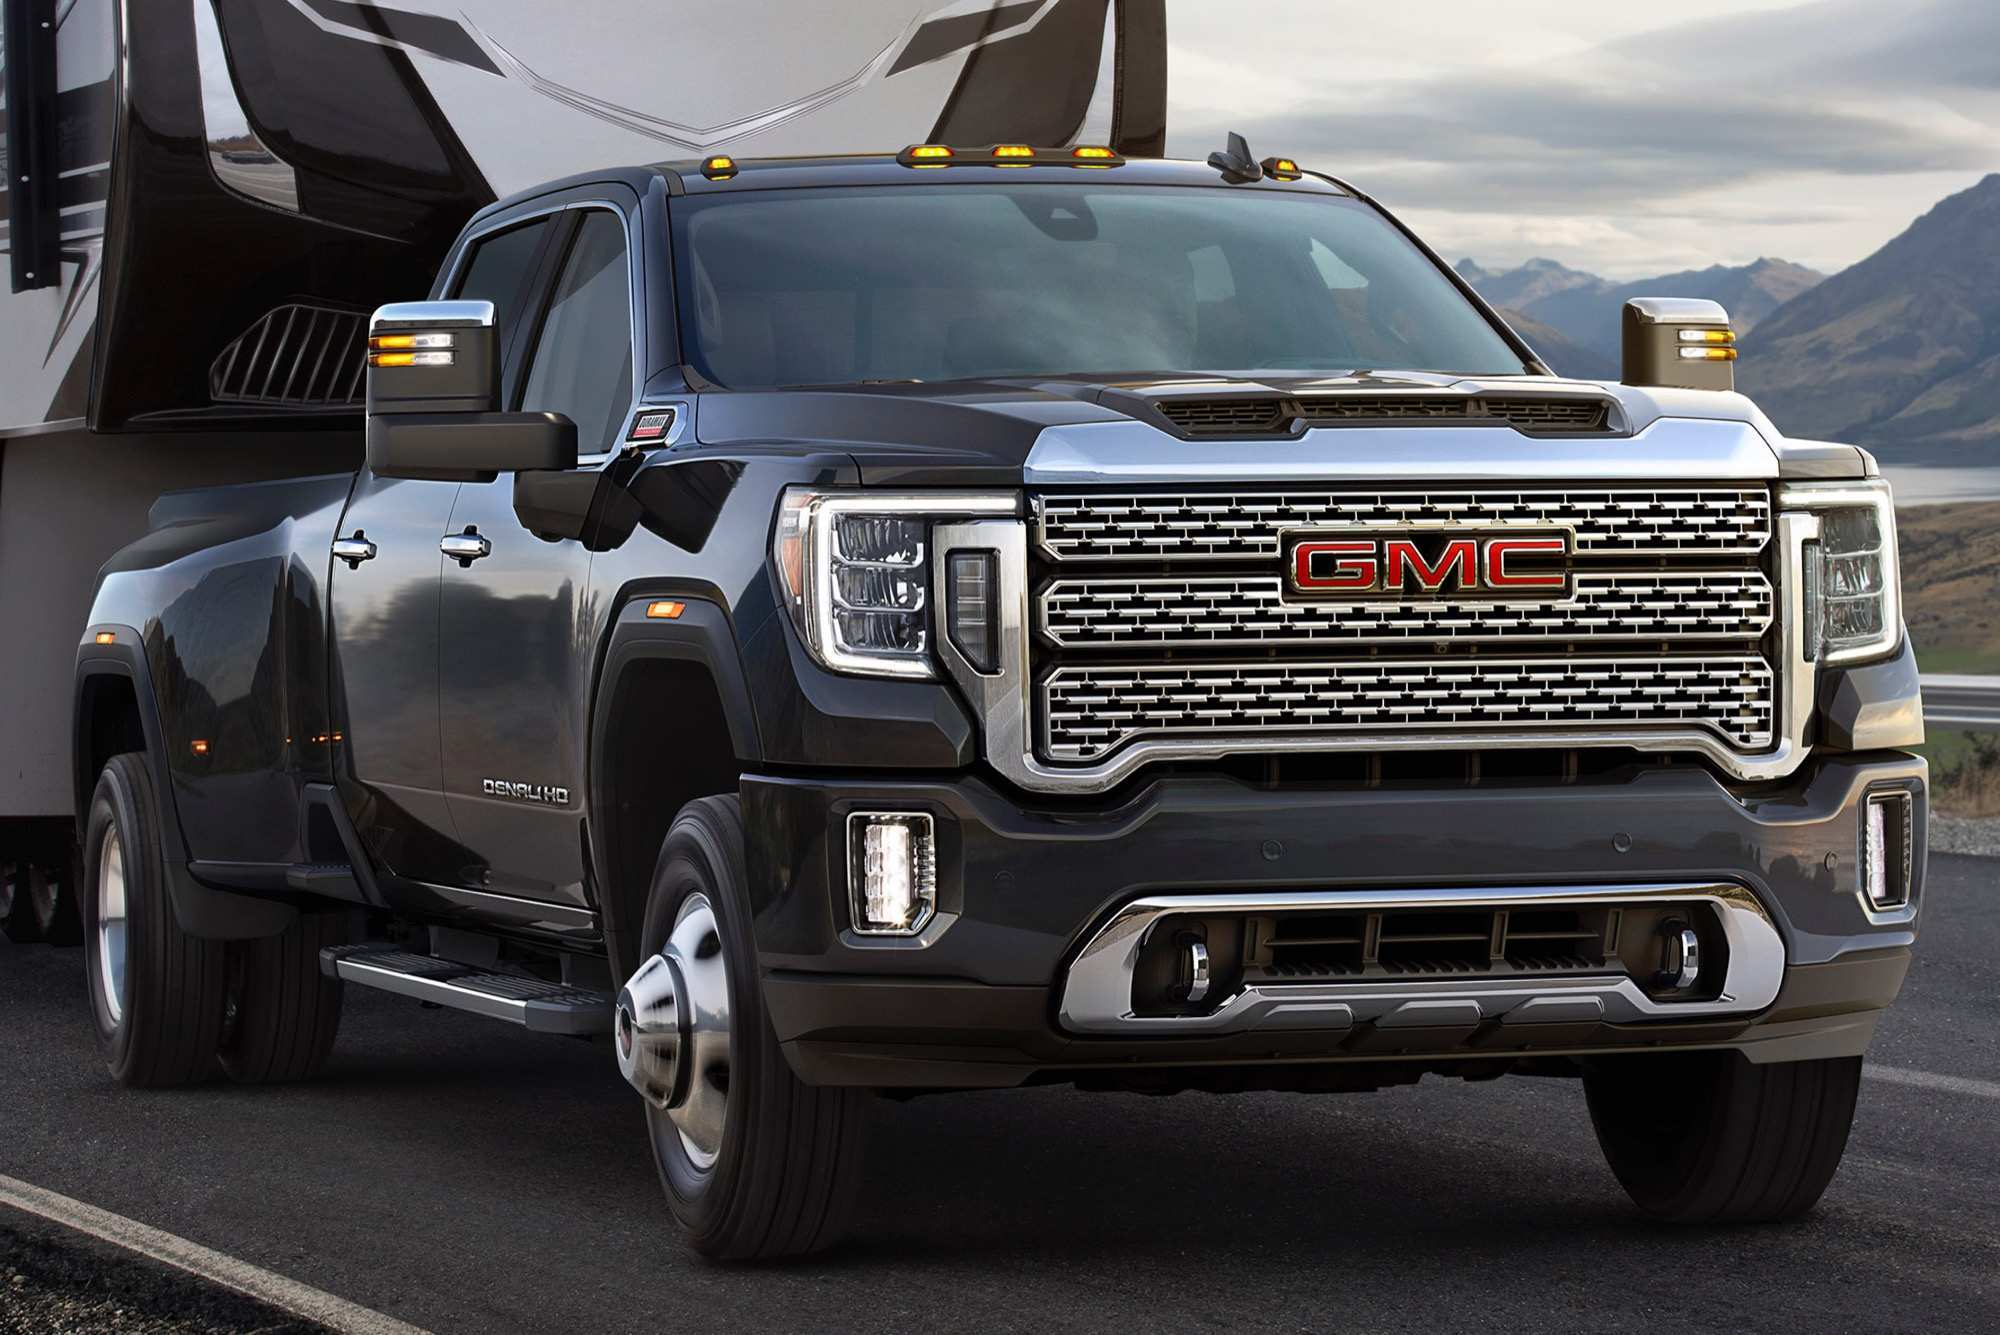 76 Concept of Gmc New Truck 2020 Interior by Gmc New Truck 2020